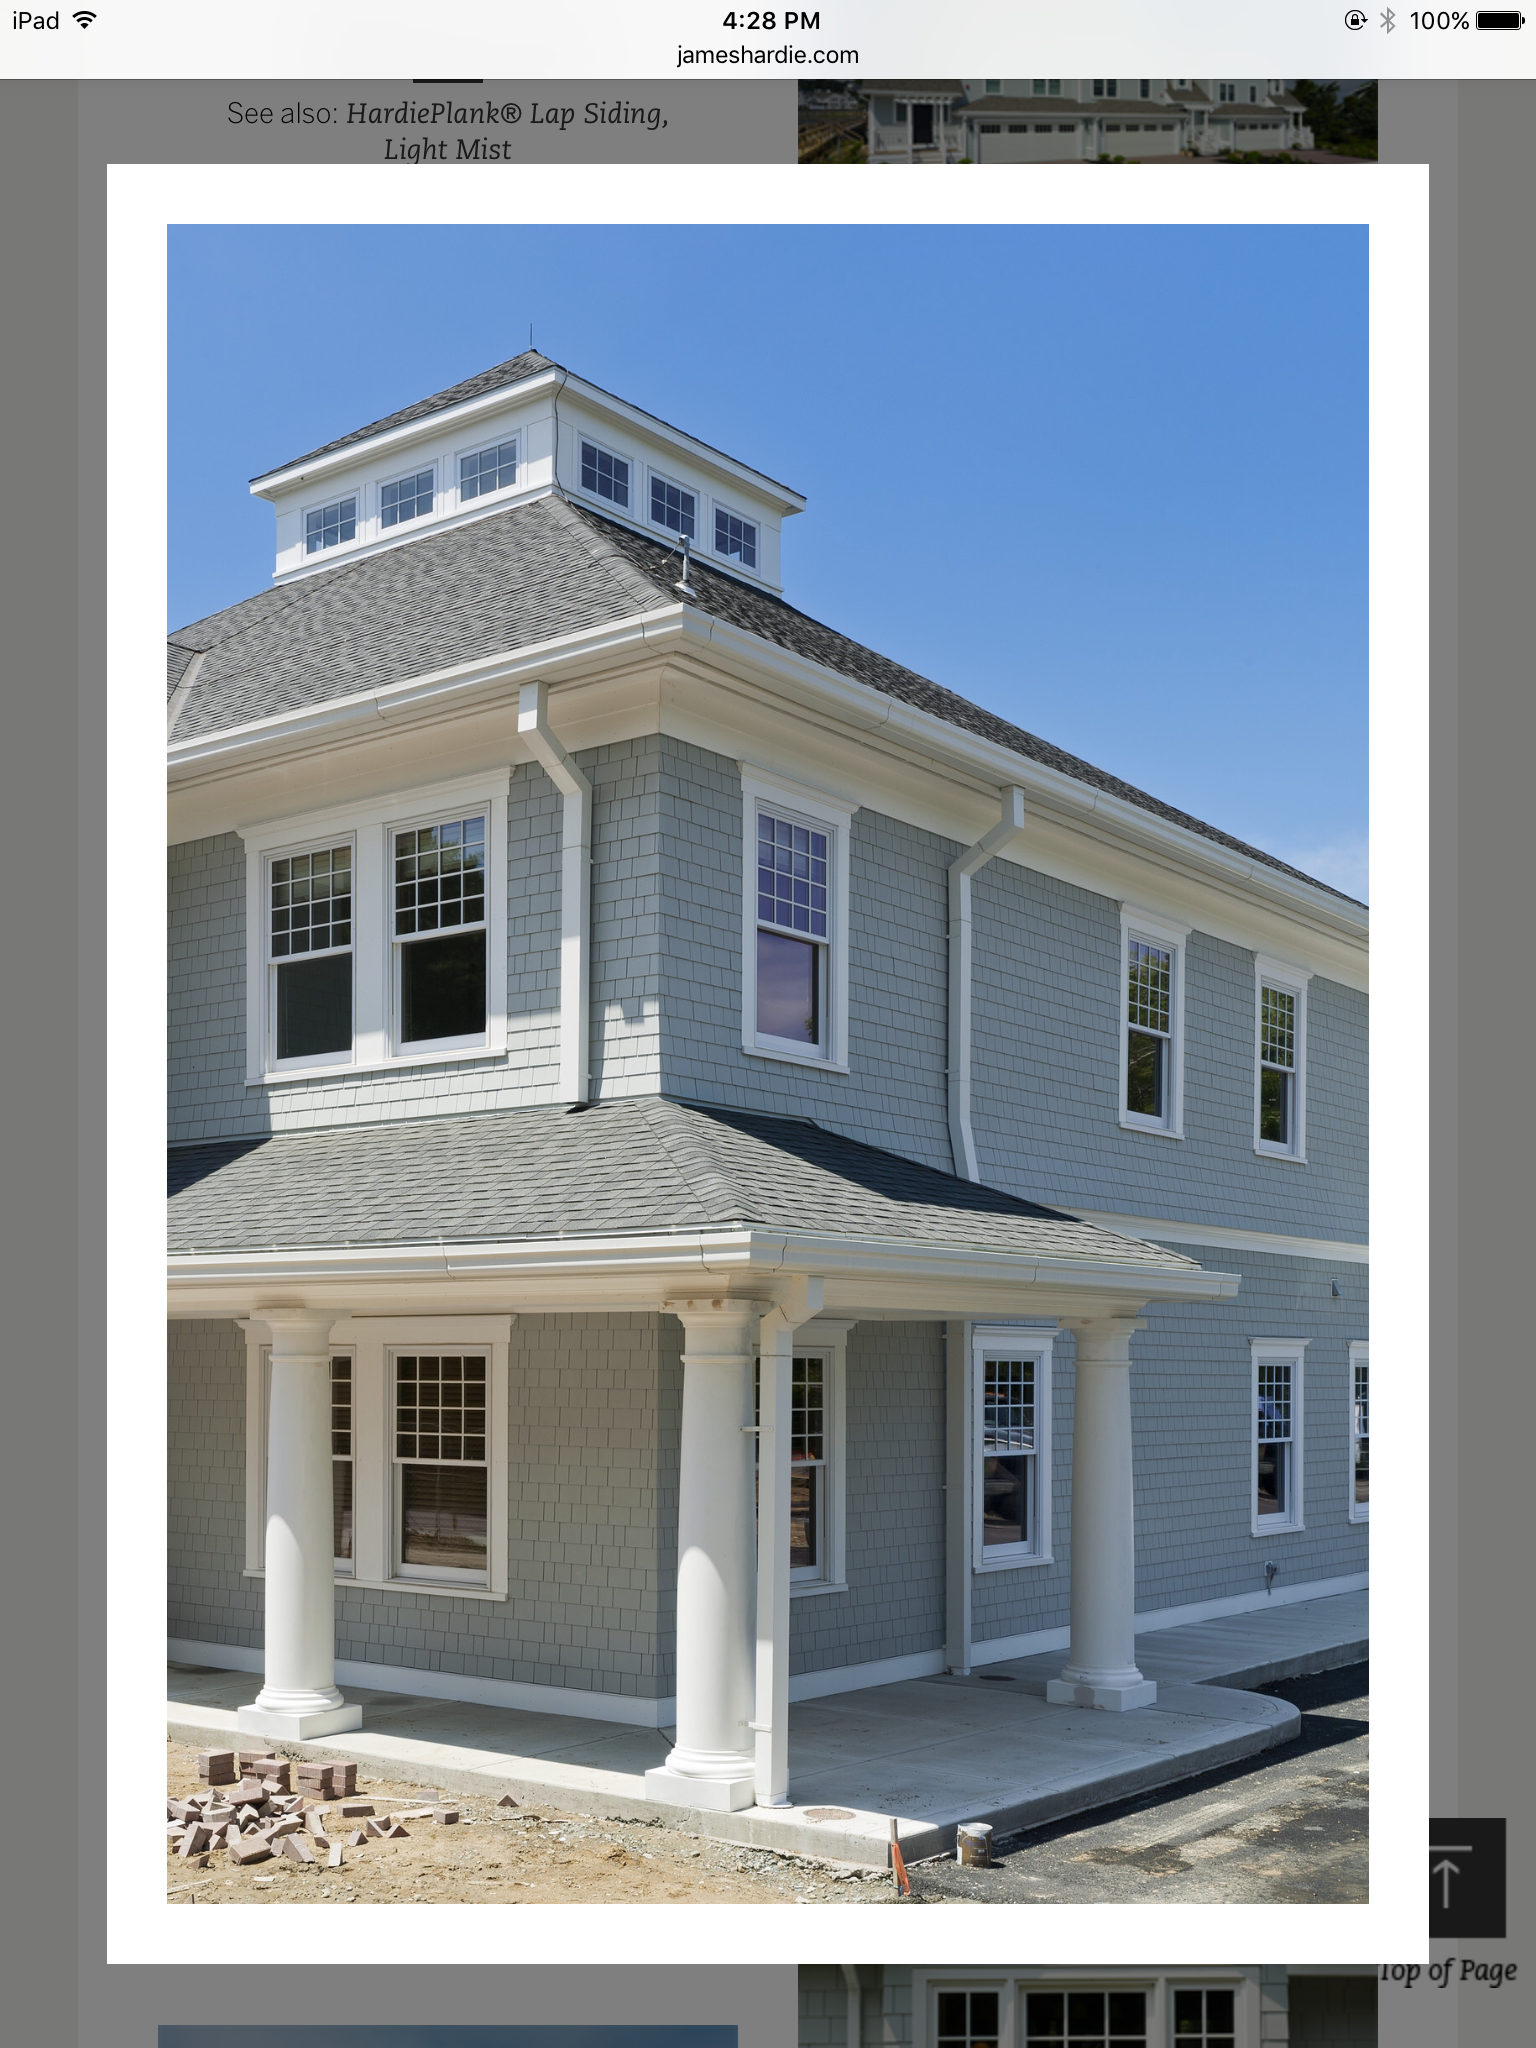 Hardy Board Siding >> Hardie board straight shingles in light mist | First impressions in 2019 | Exterior house colors ...